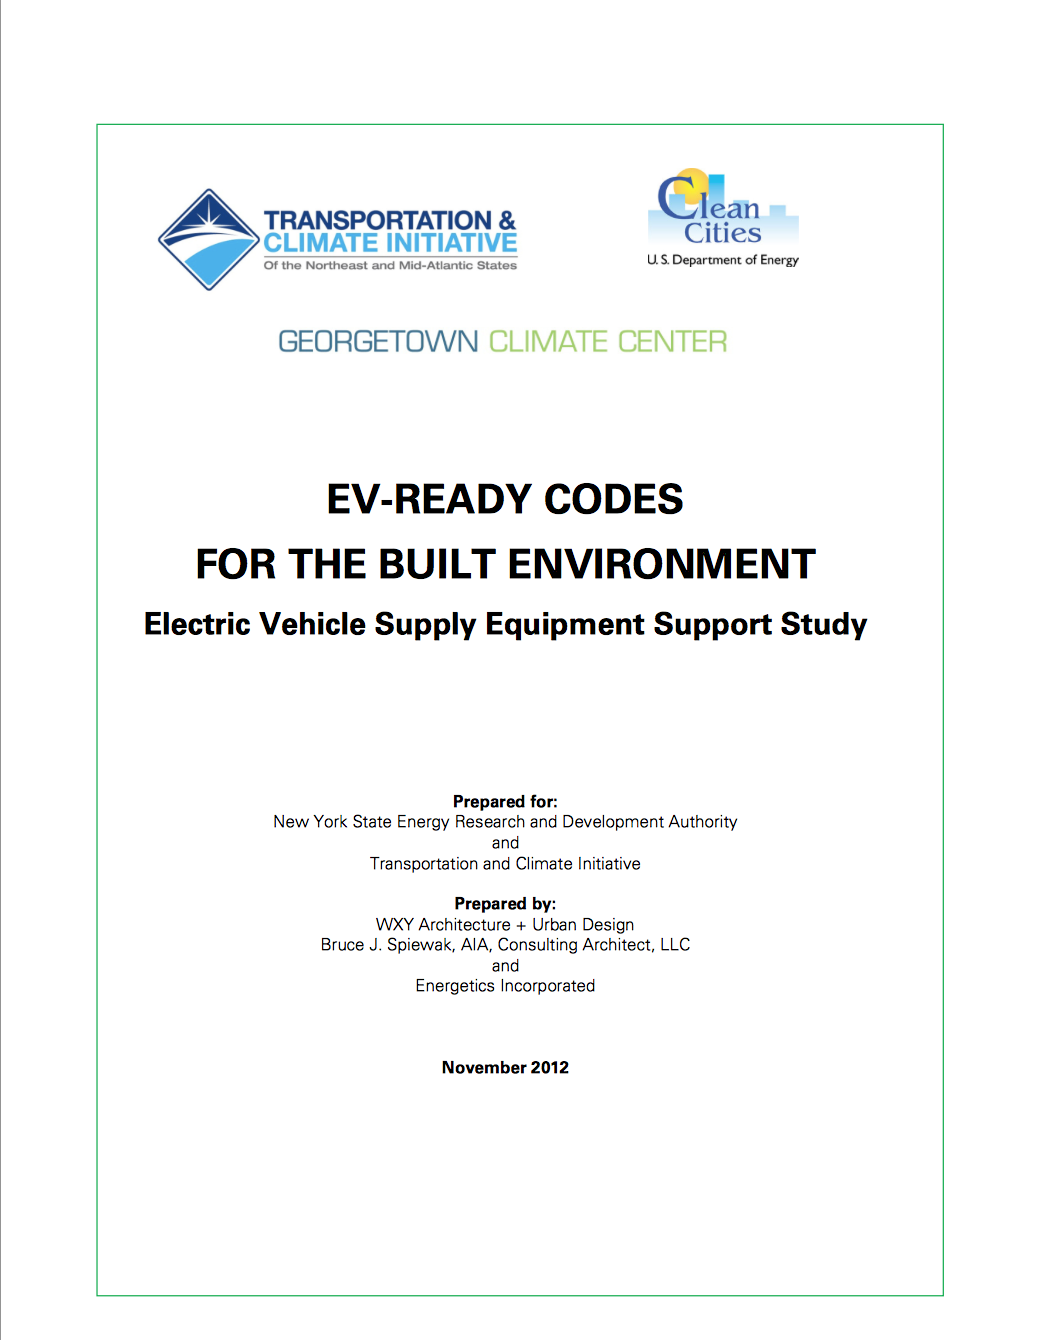 EV Ready Codes for the Built Environment